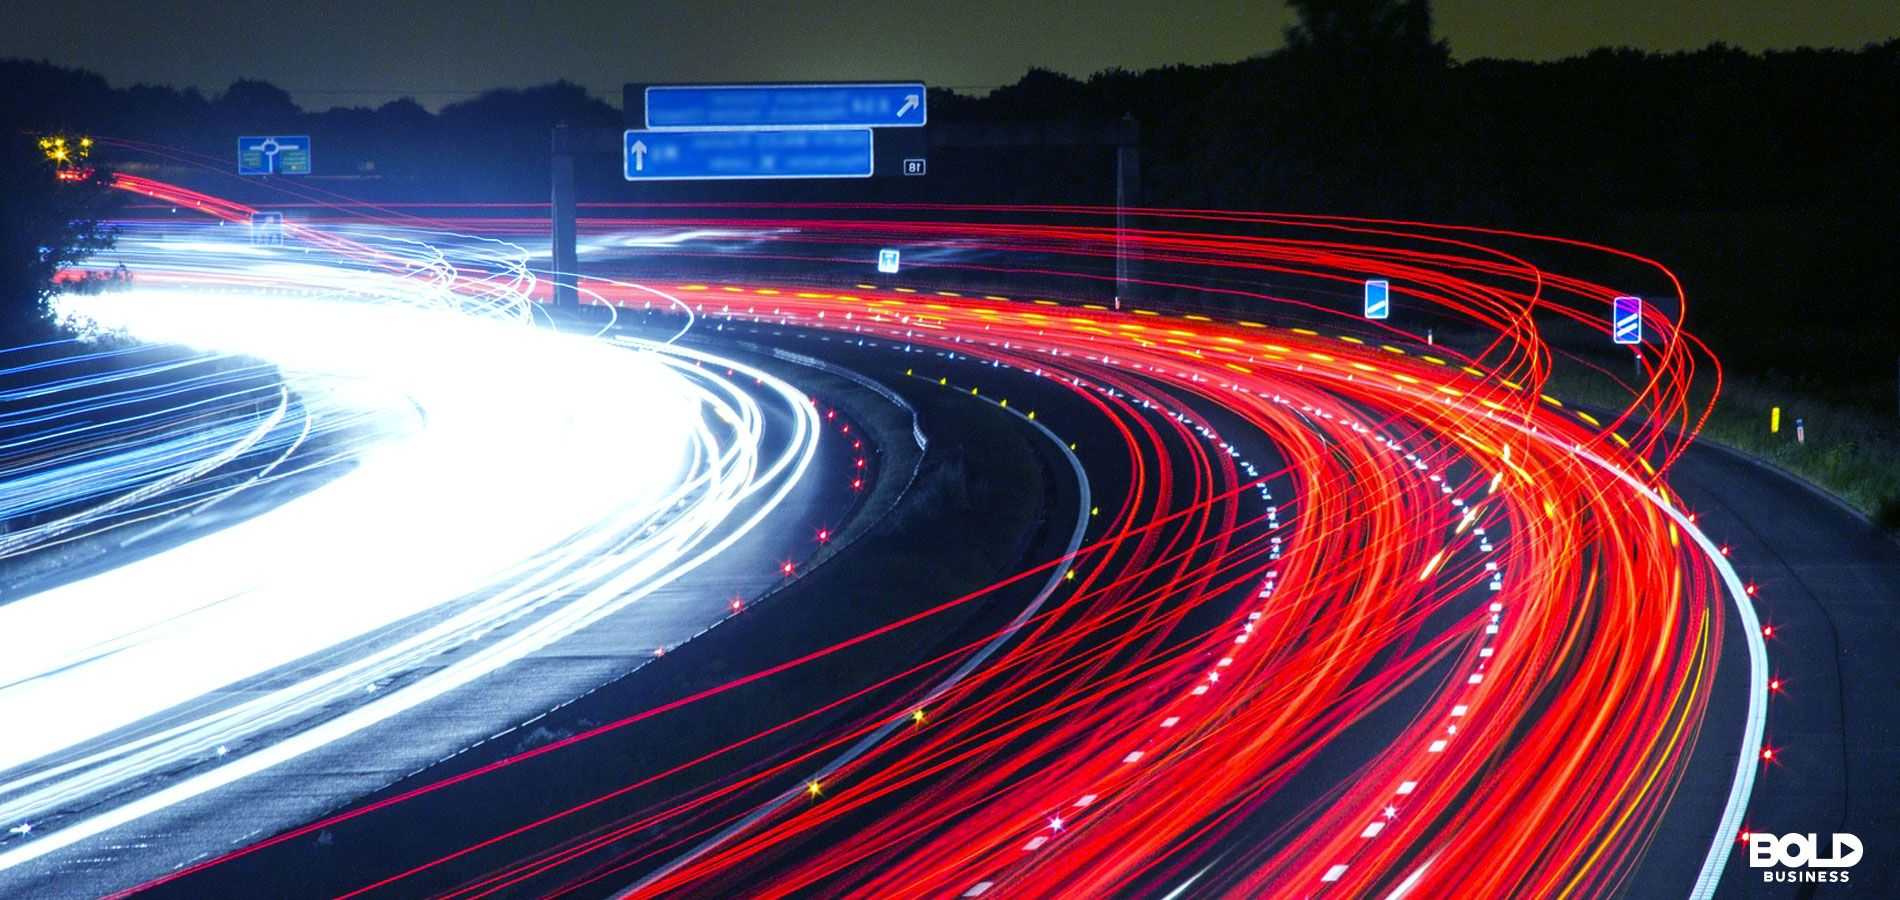 Intelligent transport system technology in the UK